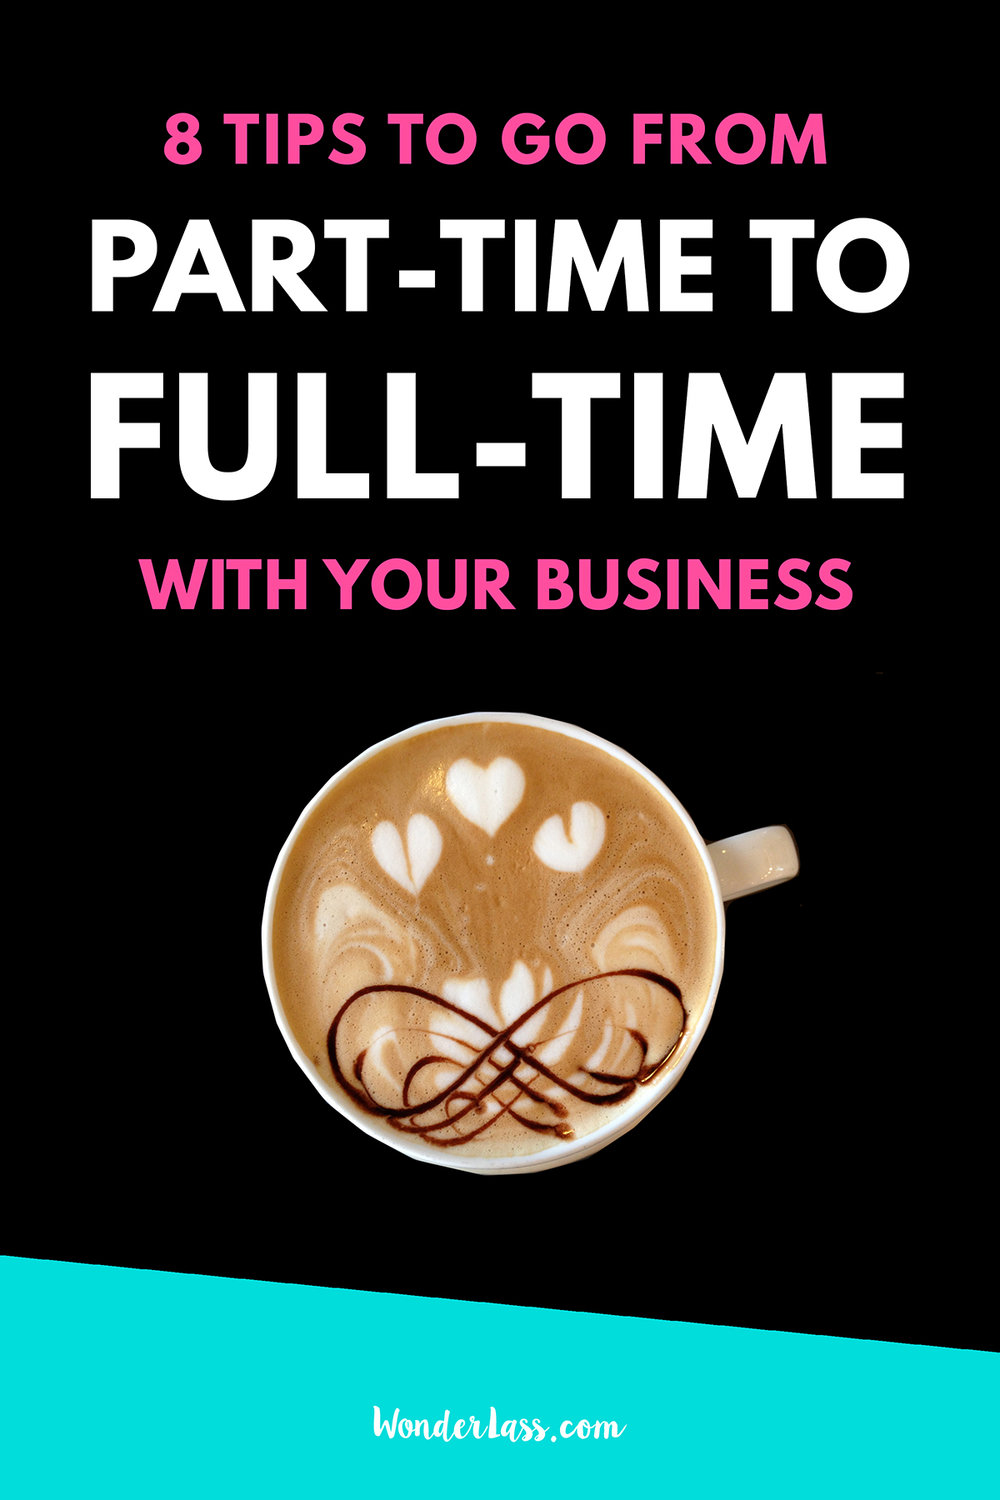 8 tips to go from part-time to full-time with your business.jpg